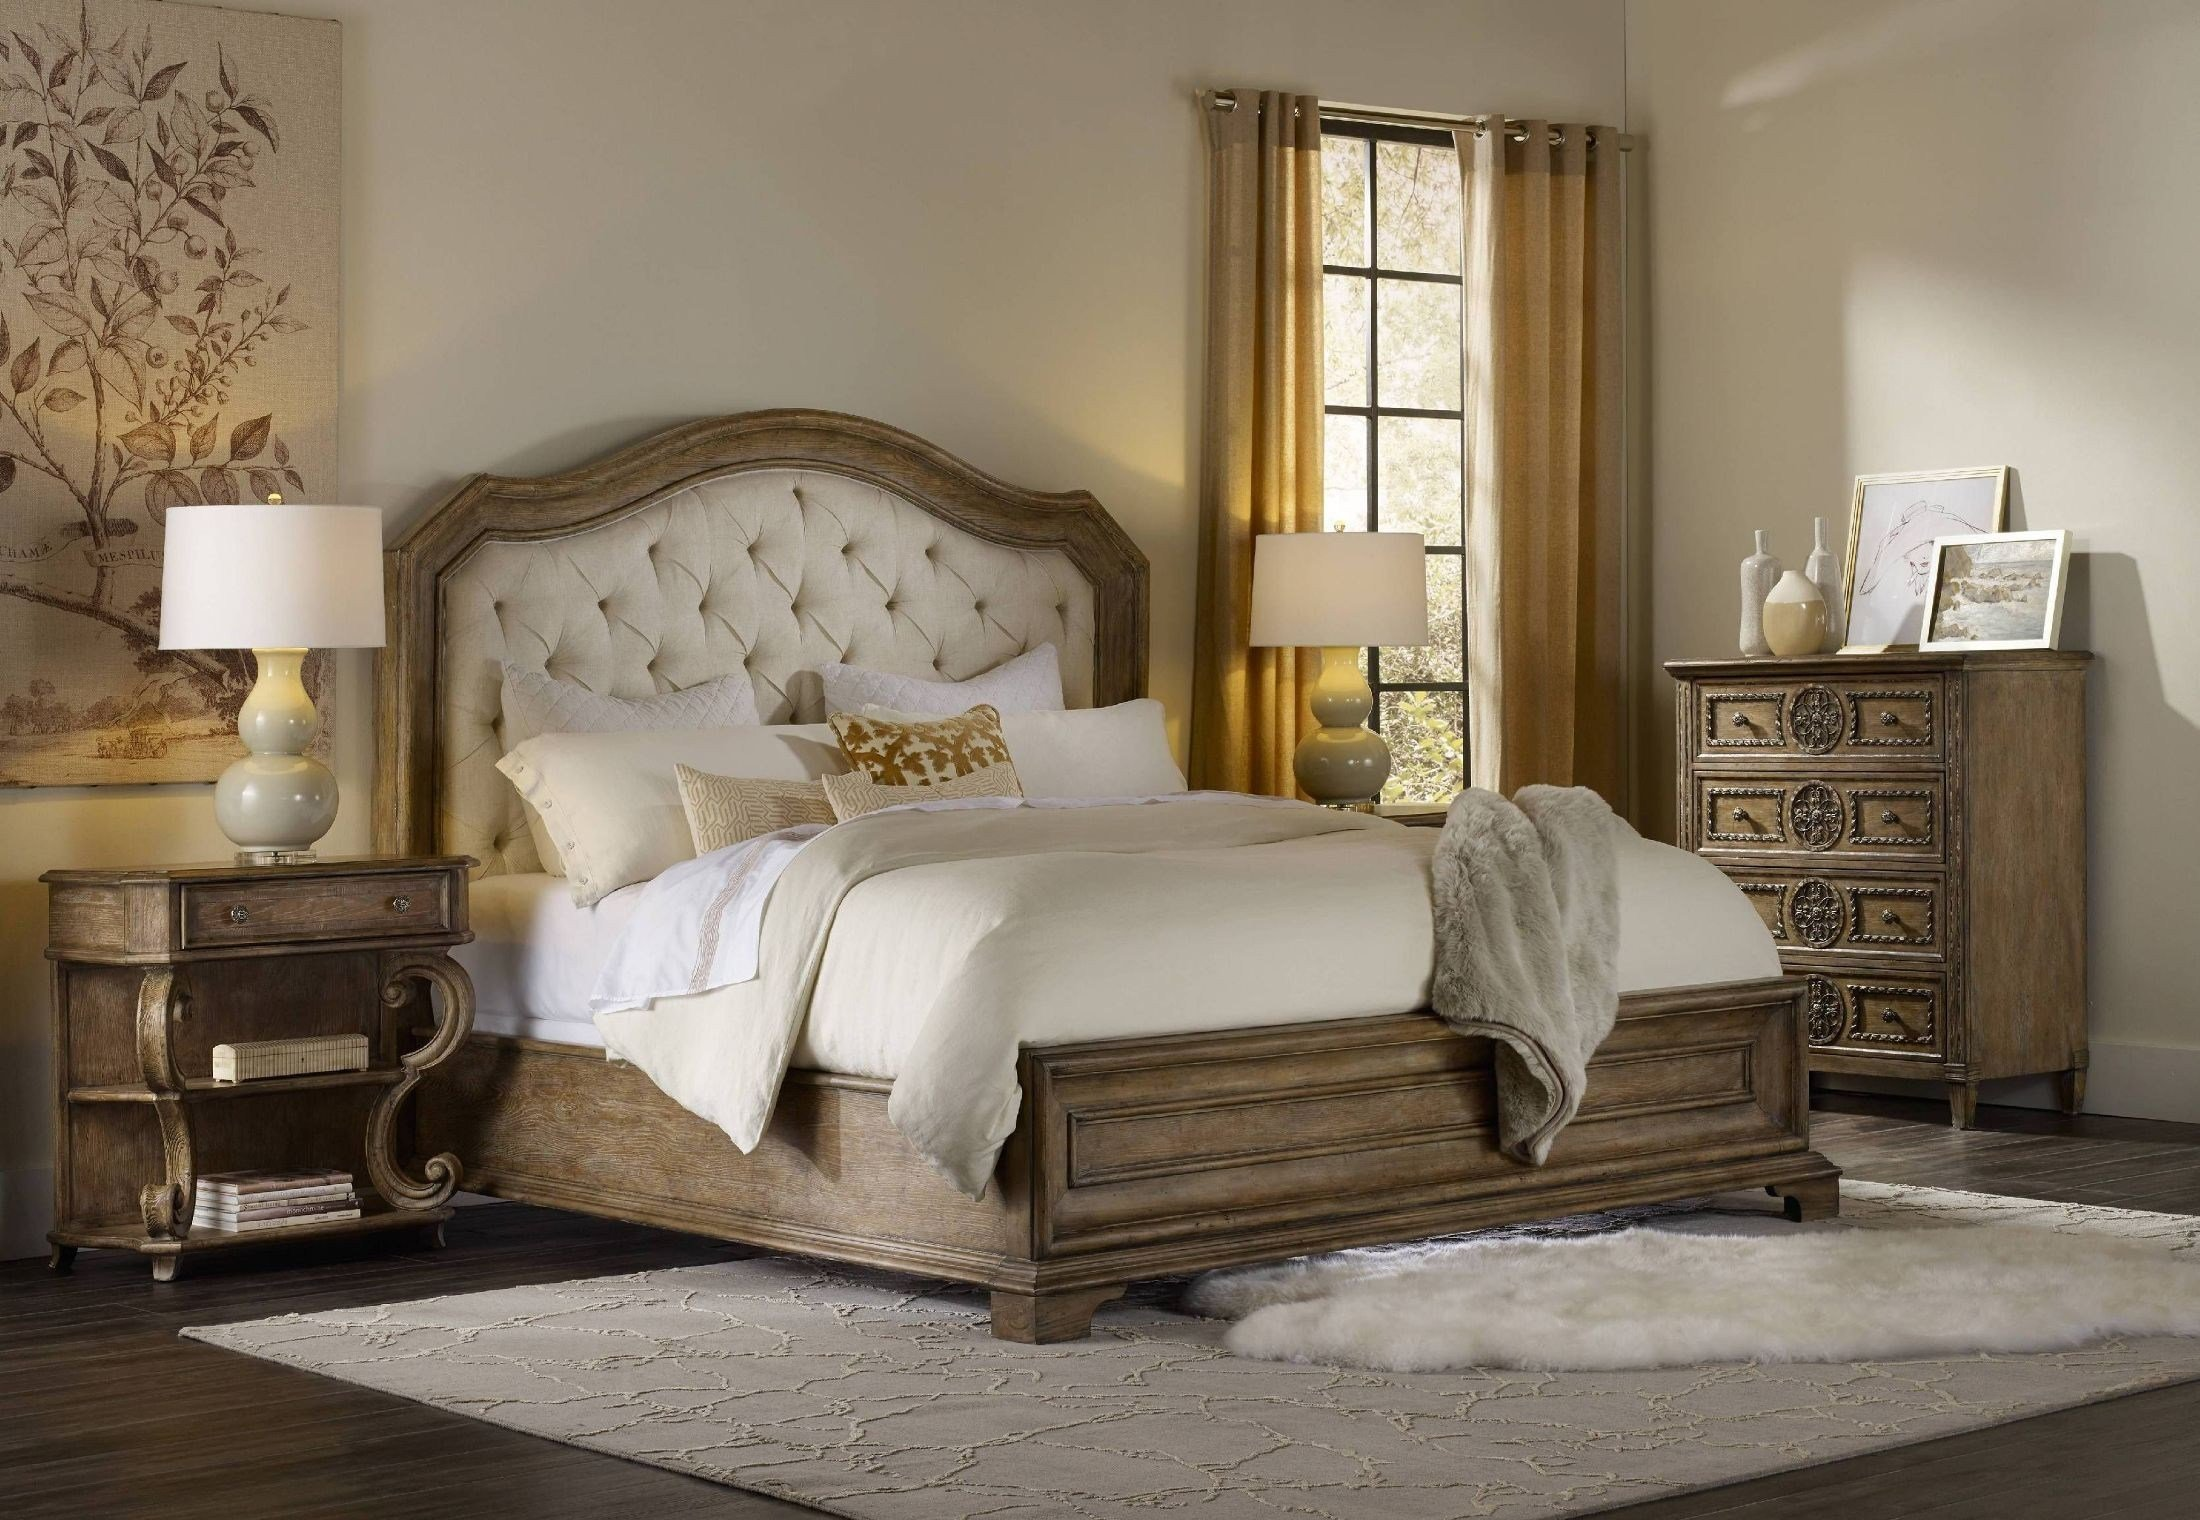 Best Solana Beige Upholstered Panel Bedroom Set From H**K*R Coleman Furniture With Pictures